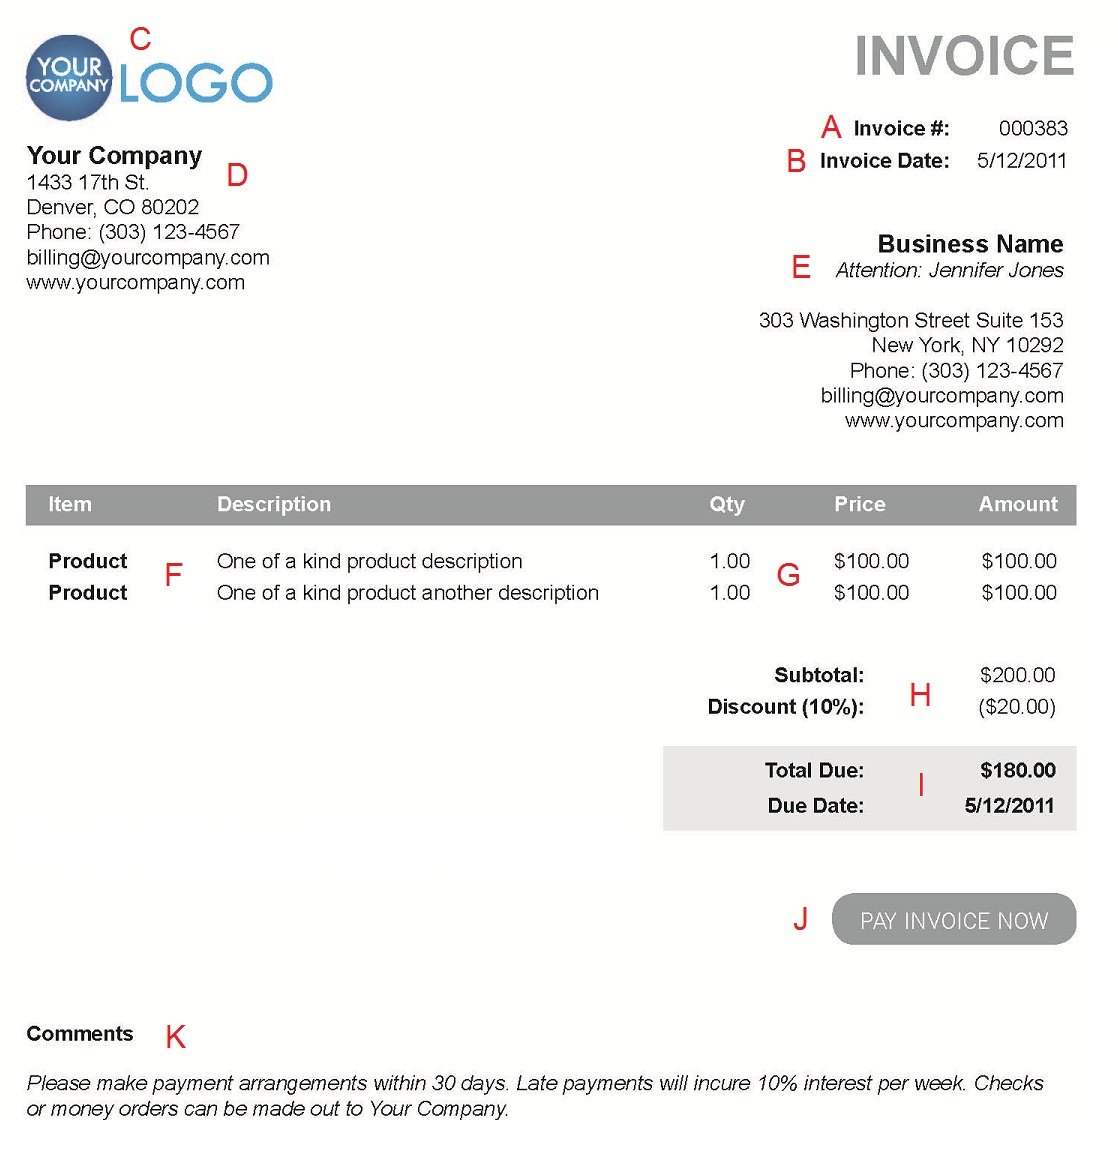 Gpwaus  Prepossessing The  Different Sections Of An Electronic Payment Invoice With Remarkable A  With Amusing Internal Control Over Cash Receipts Also Define Tax Receipts In Addition Boots Returns Policy No Receipt And Format Of Cash Receipt As Well As Seneca Tax Receipt Additionally Cash Receipt Machine From Paysimplecom With Gpwaus  Remarkable The  Different Sections Of An Electronic Payment Invoice With Amusing A  And Prepossessing Internal Control Over Cash Receipts Also Define Tax Receipts In Addition Boots Returns Policy No Receipt From Paysimplecom